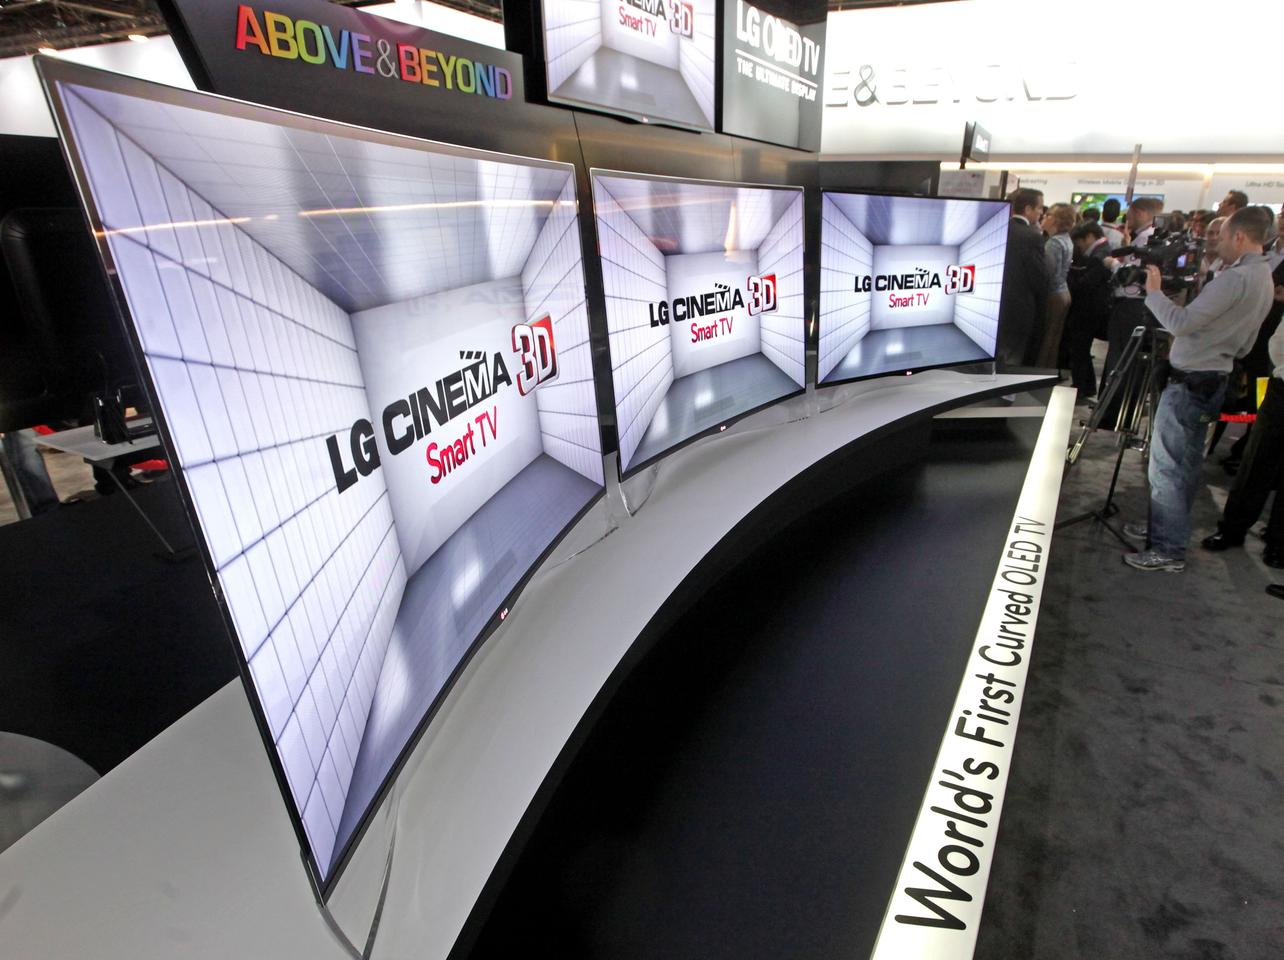 Three of LG's new 55-inch EA9800 curved OLED TV were positioned before a sign introducing them as the world's first curved OLED TVs